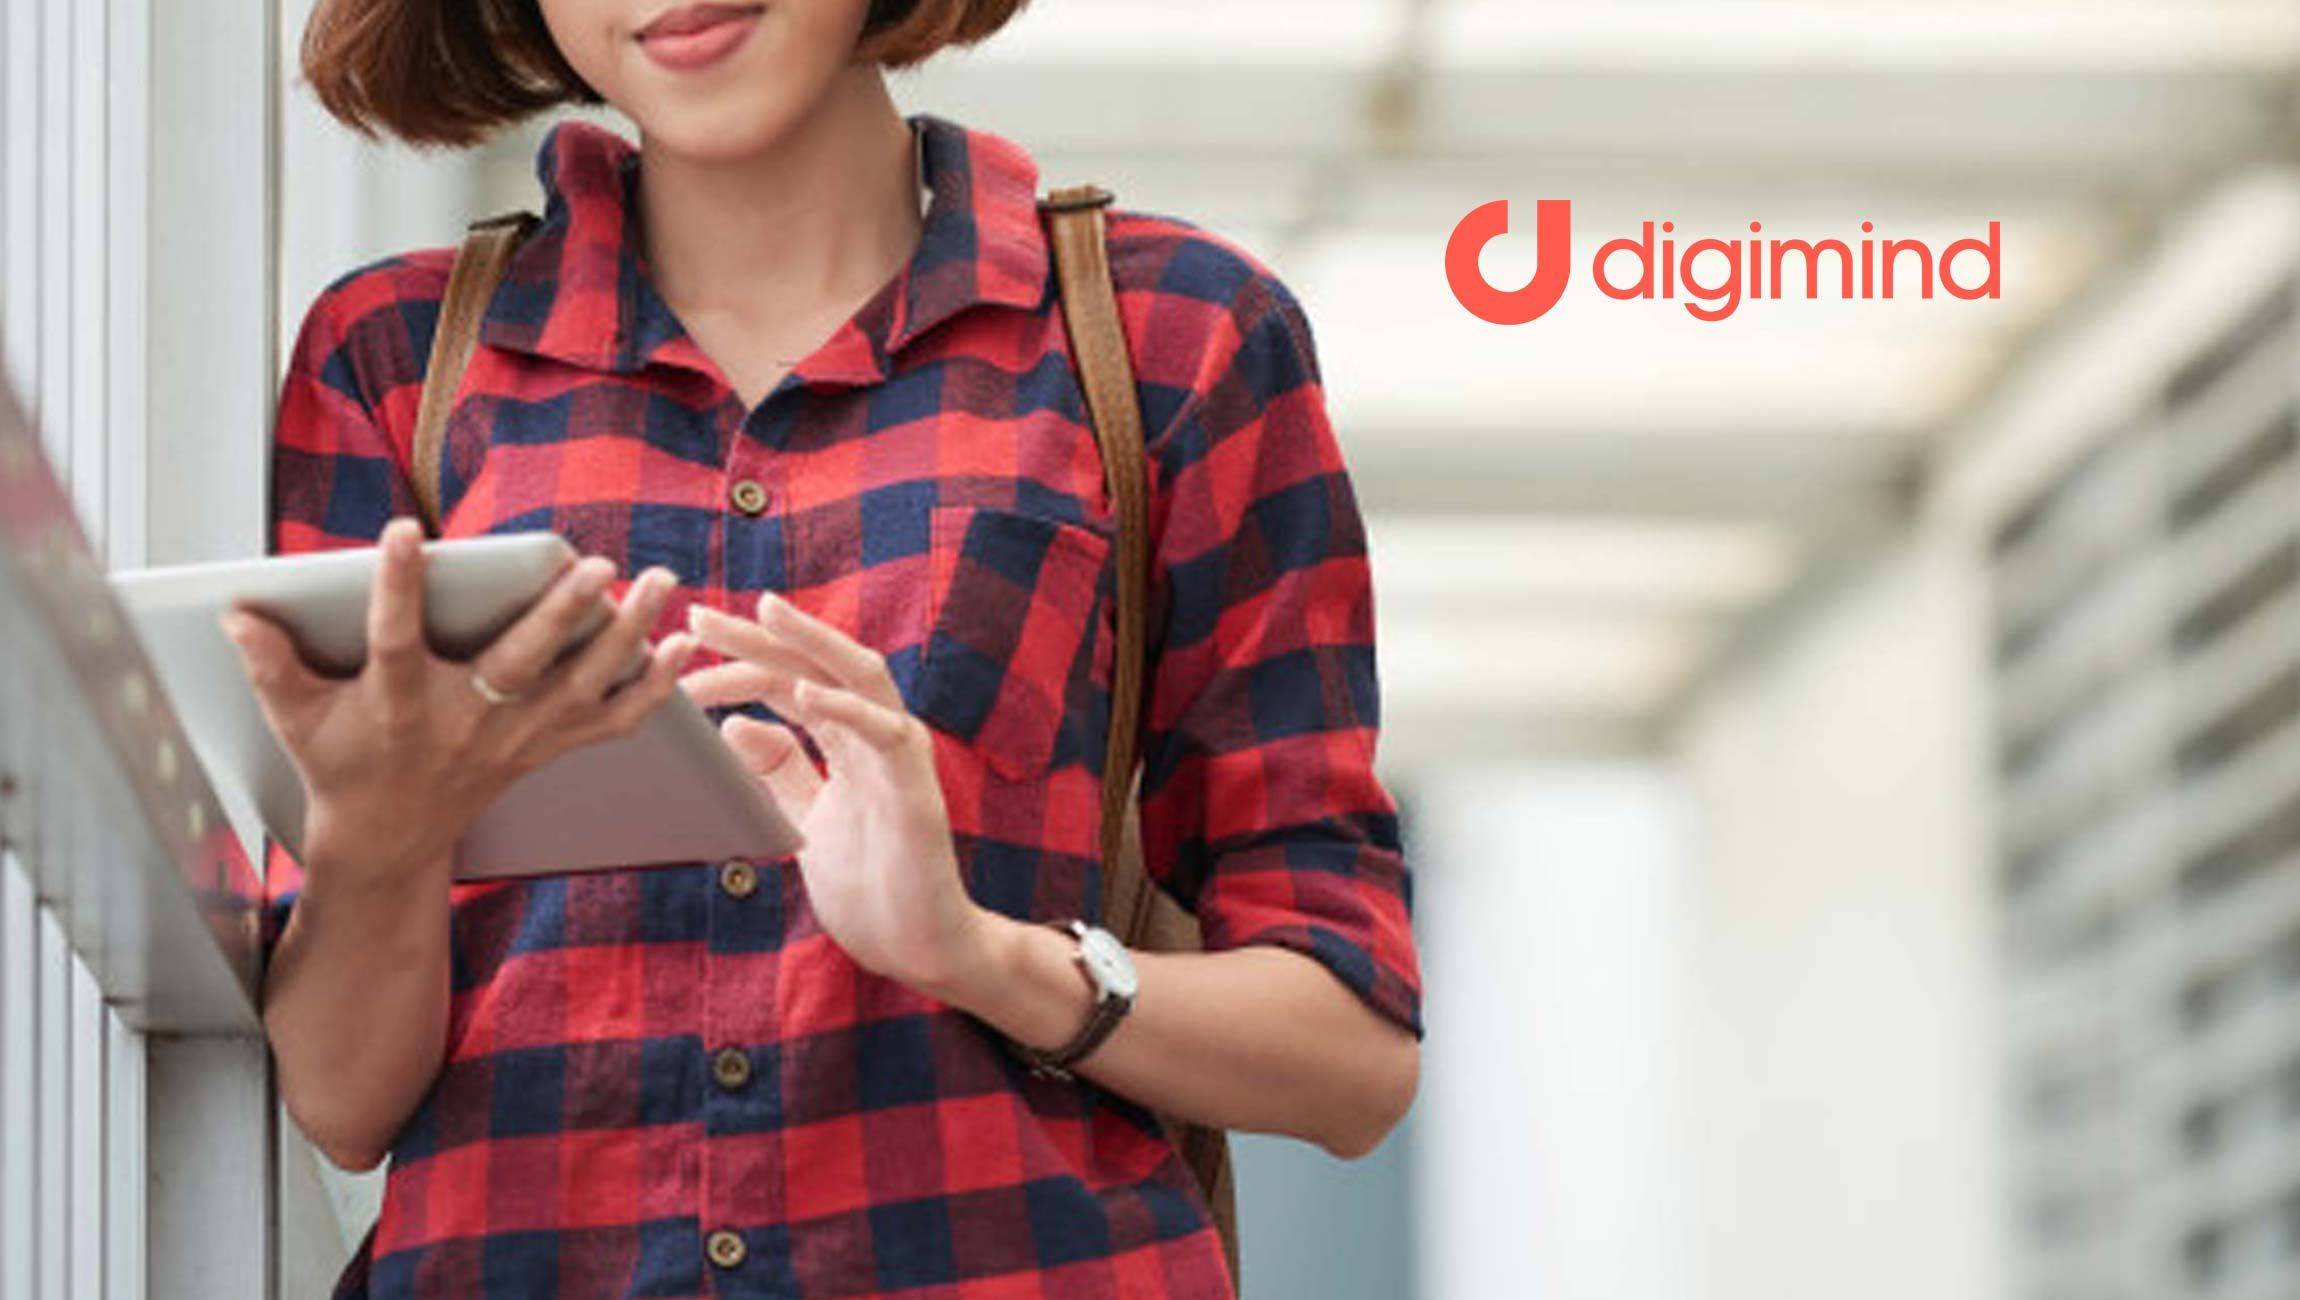 Digimind Adds Qualtrics, Microsoft Teams, and Google Data Studio Apps to the Digimind Marketplace